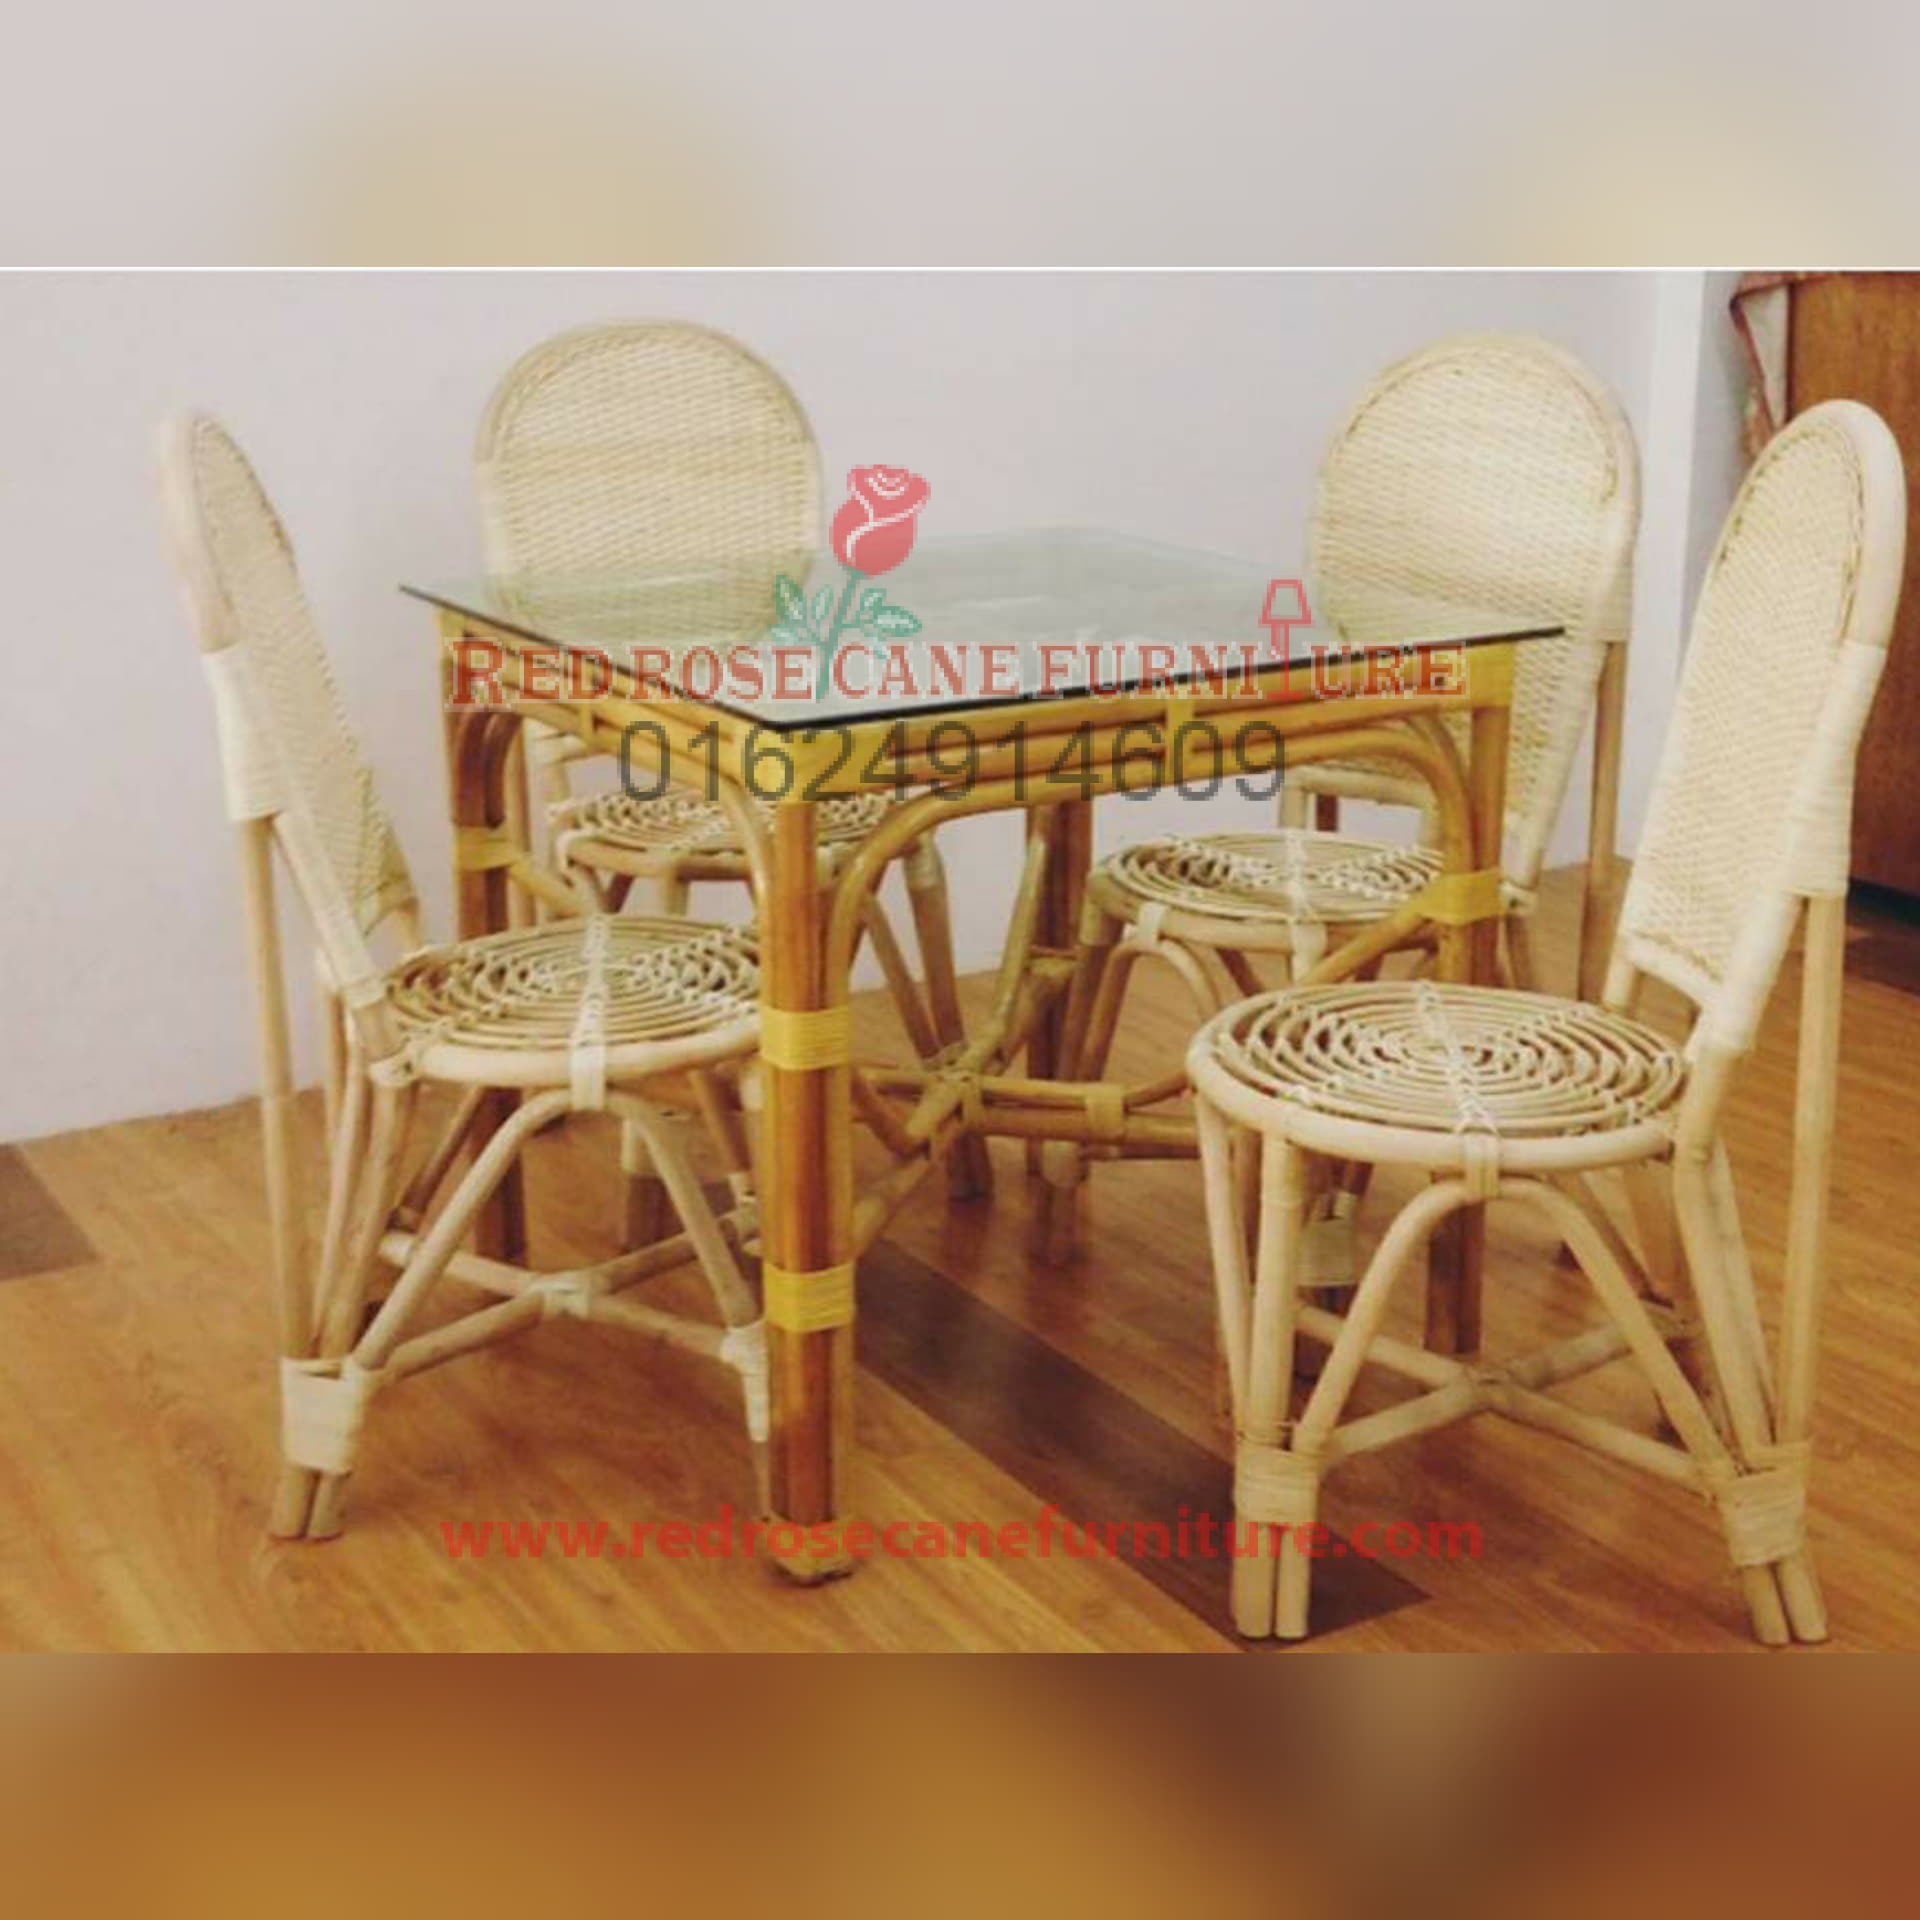 Cane Dining Table 08 Red Rose Cane Furniture Interior